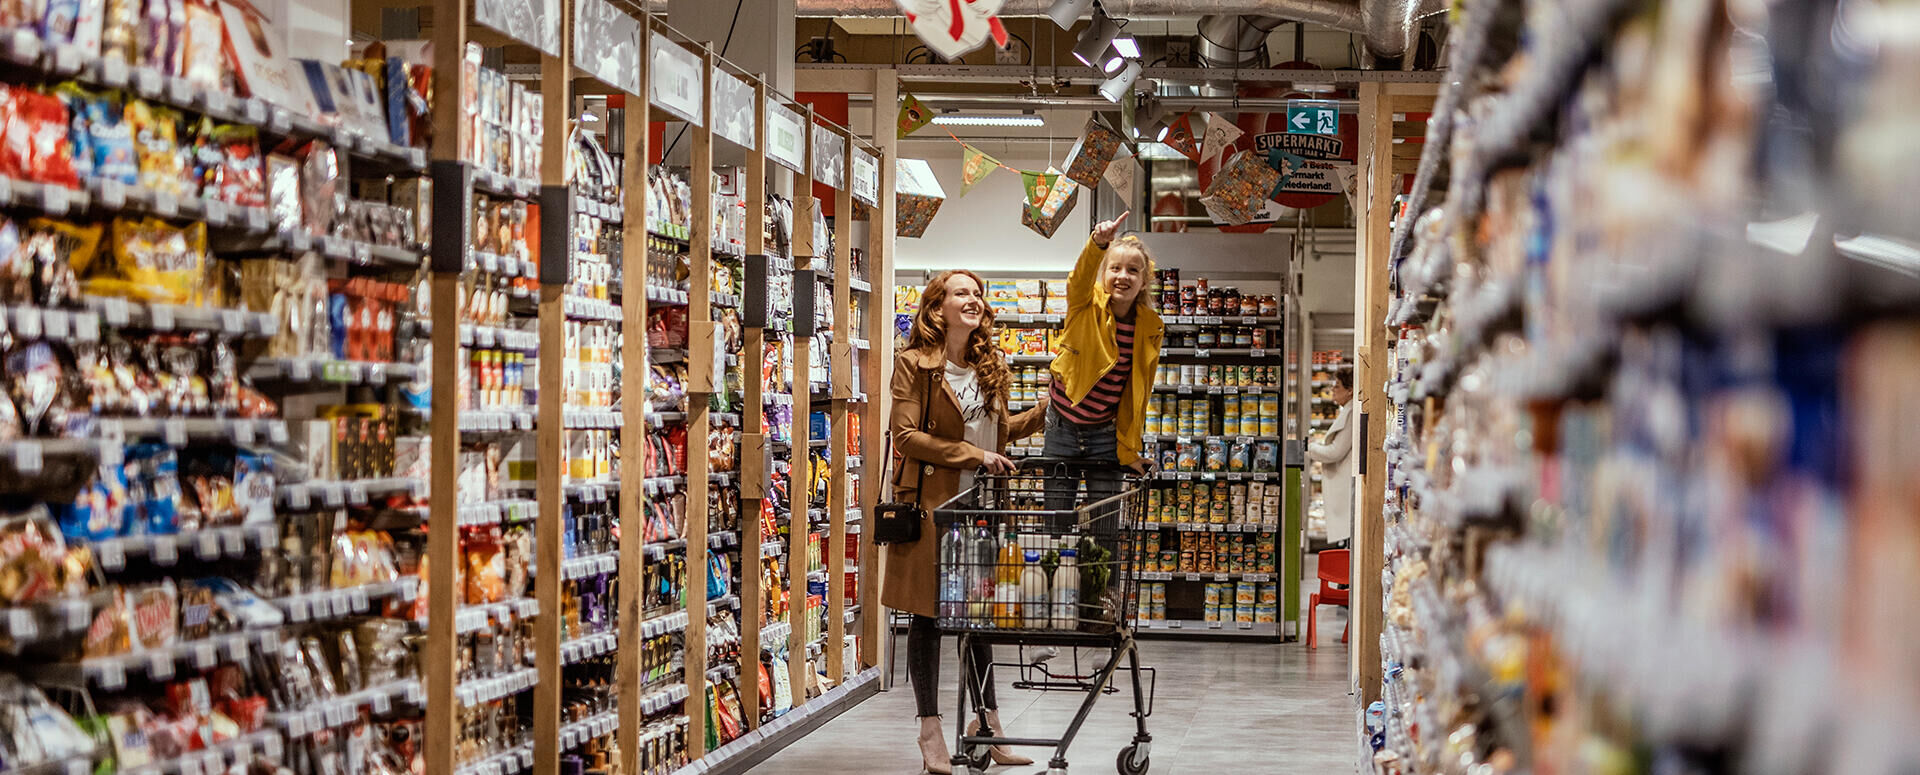 Key Food Retail Trends of 2020